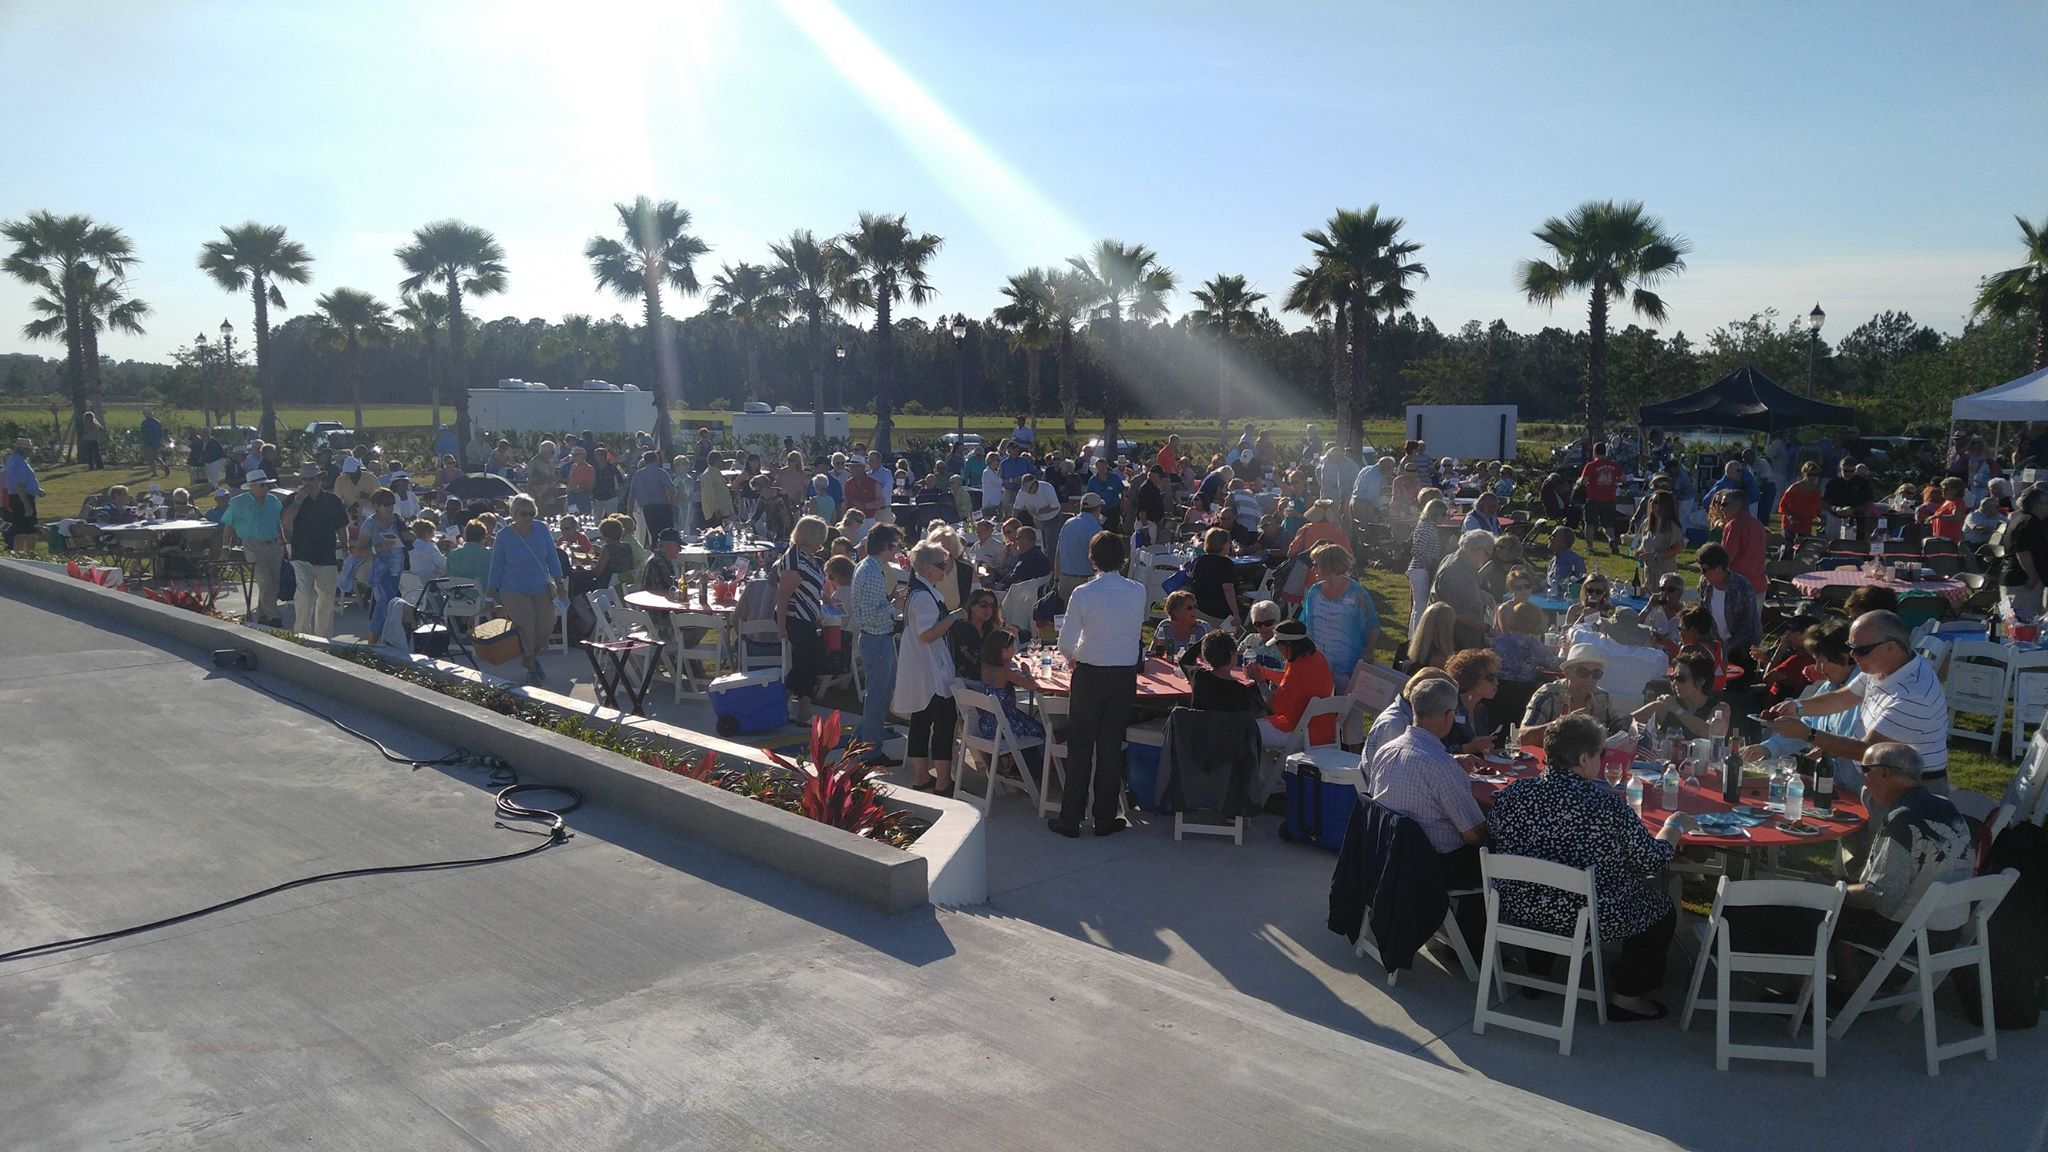 Thanks To Everyone Who Joined Fields Bmw Fields Auto Group Fields Bmw Of Daytona For The 10th Annual Picnic Pops Outdoor C Bmw Picnic Pops Outdoor Concert